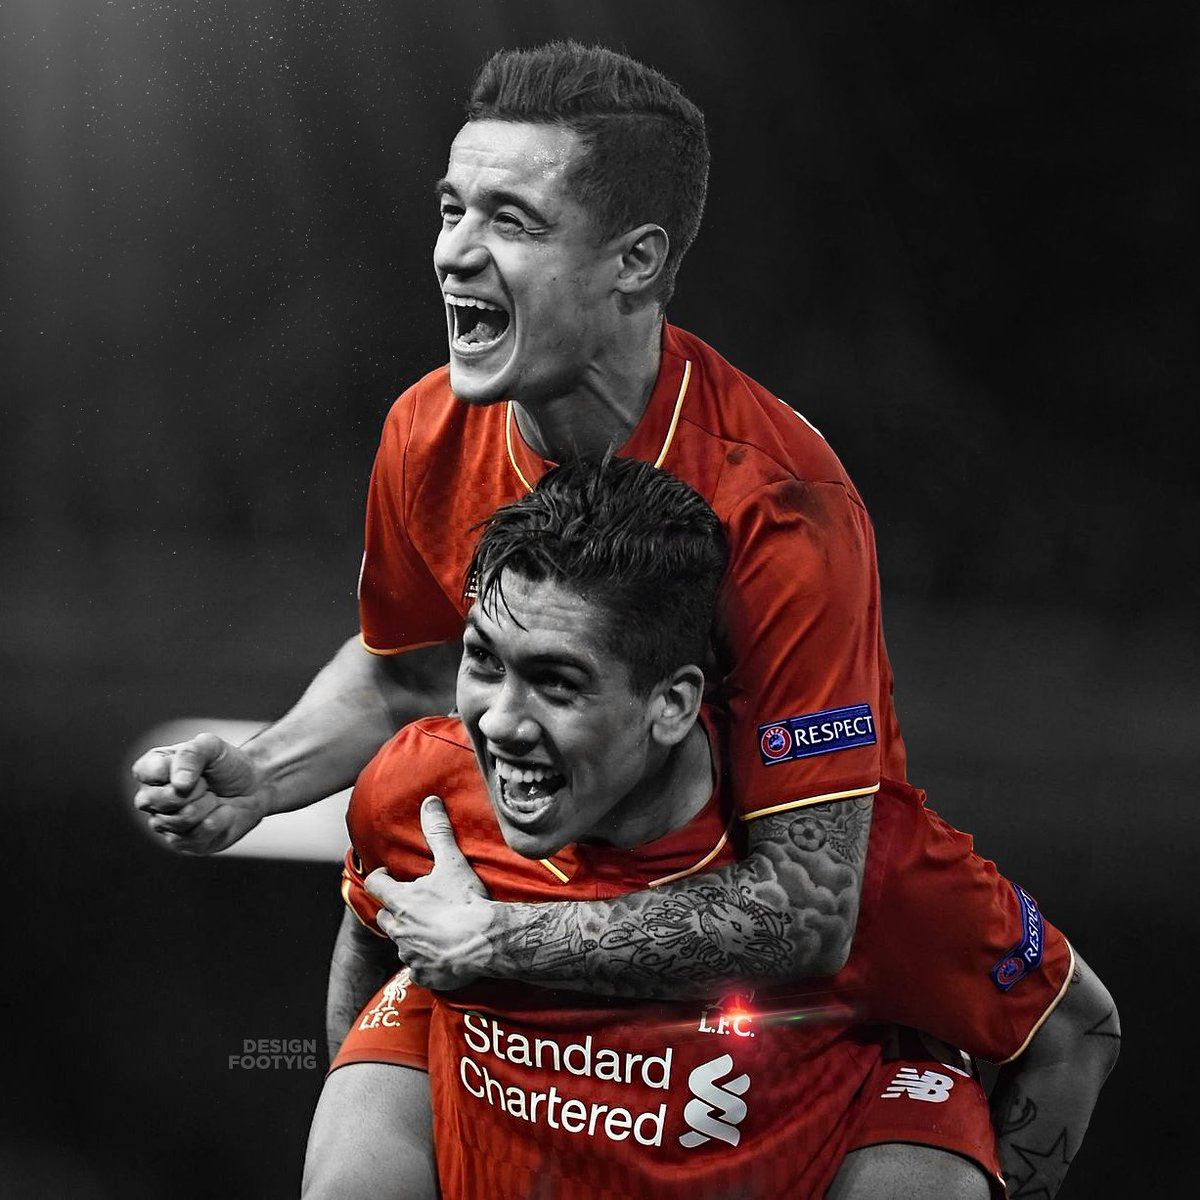 """Roberto Firmino: On Twitter: """"@DesignFootyIG Could You Make An Edit With"""